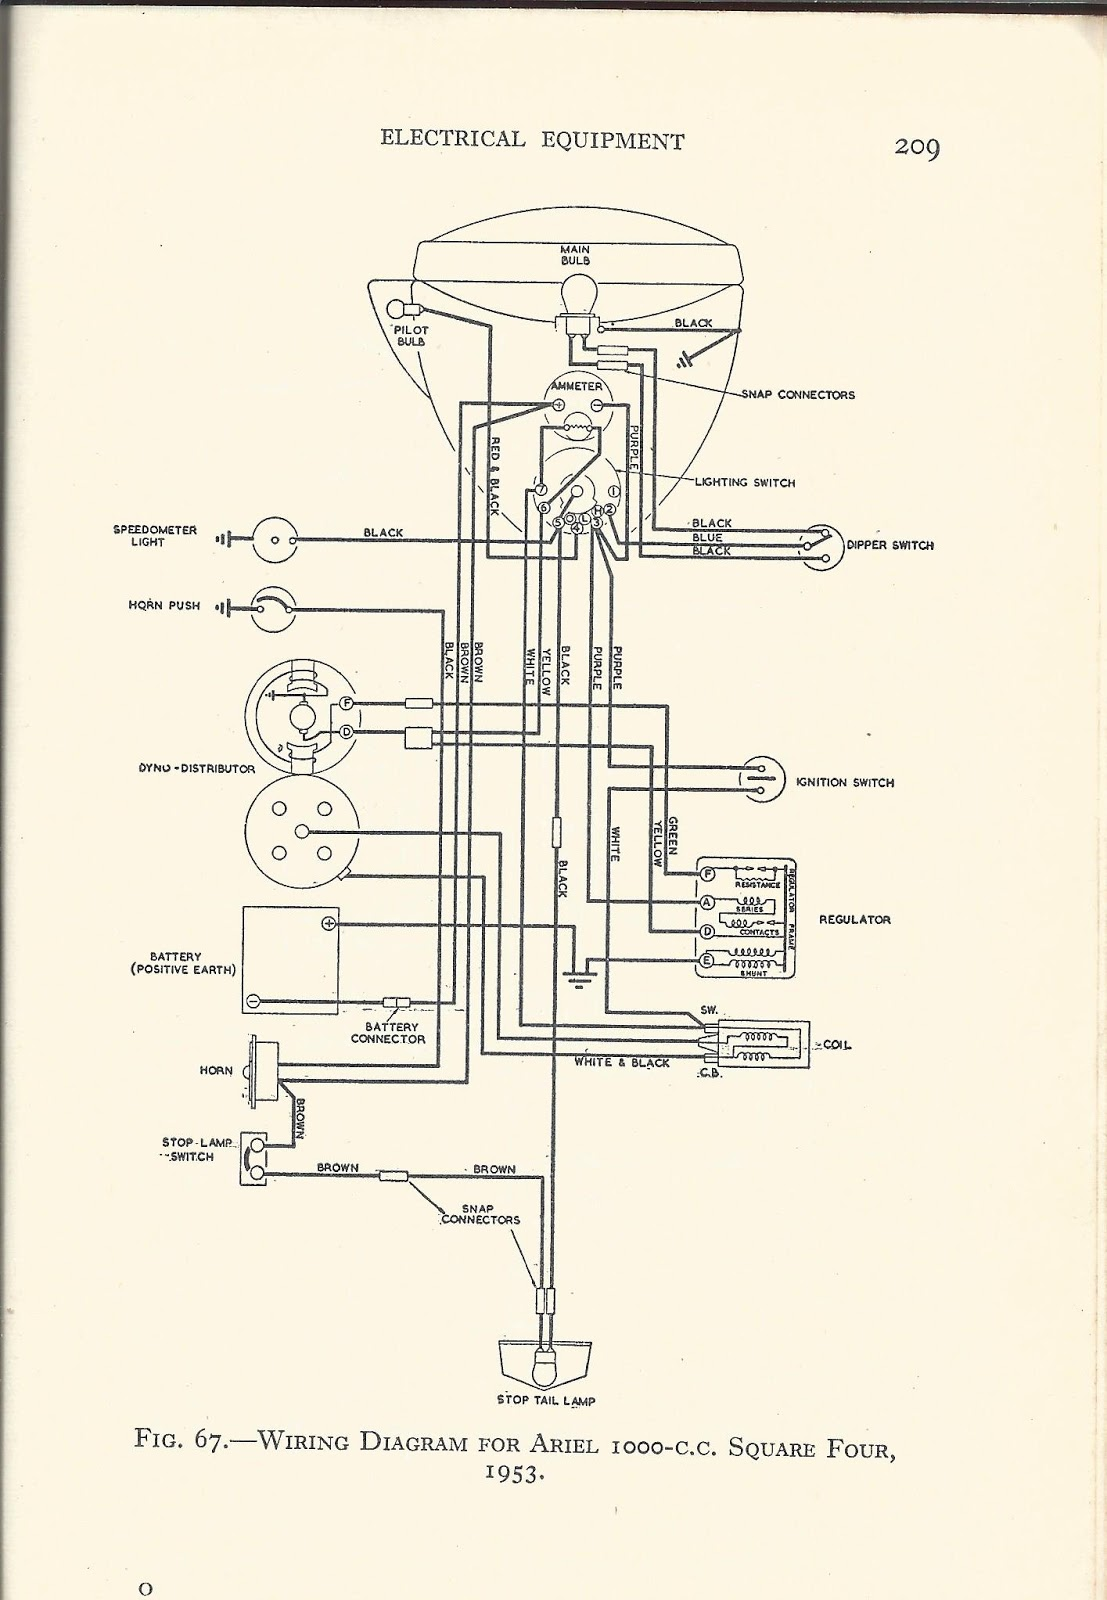 bmw r51 3 wiring diagram network cable wire bsa engine schematics library